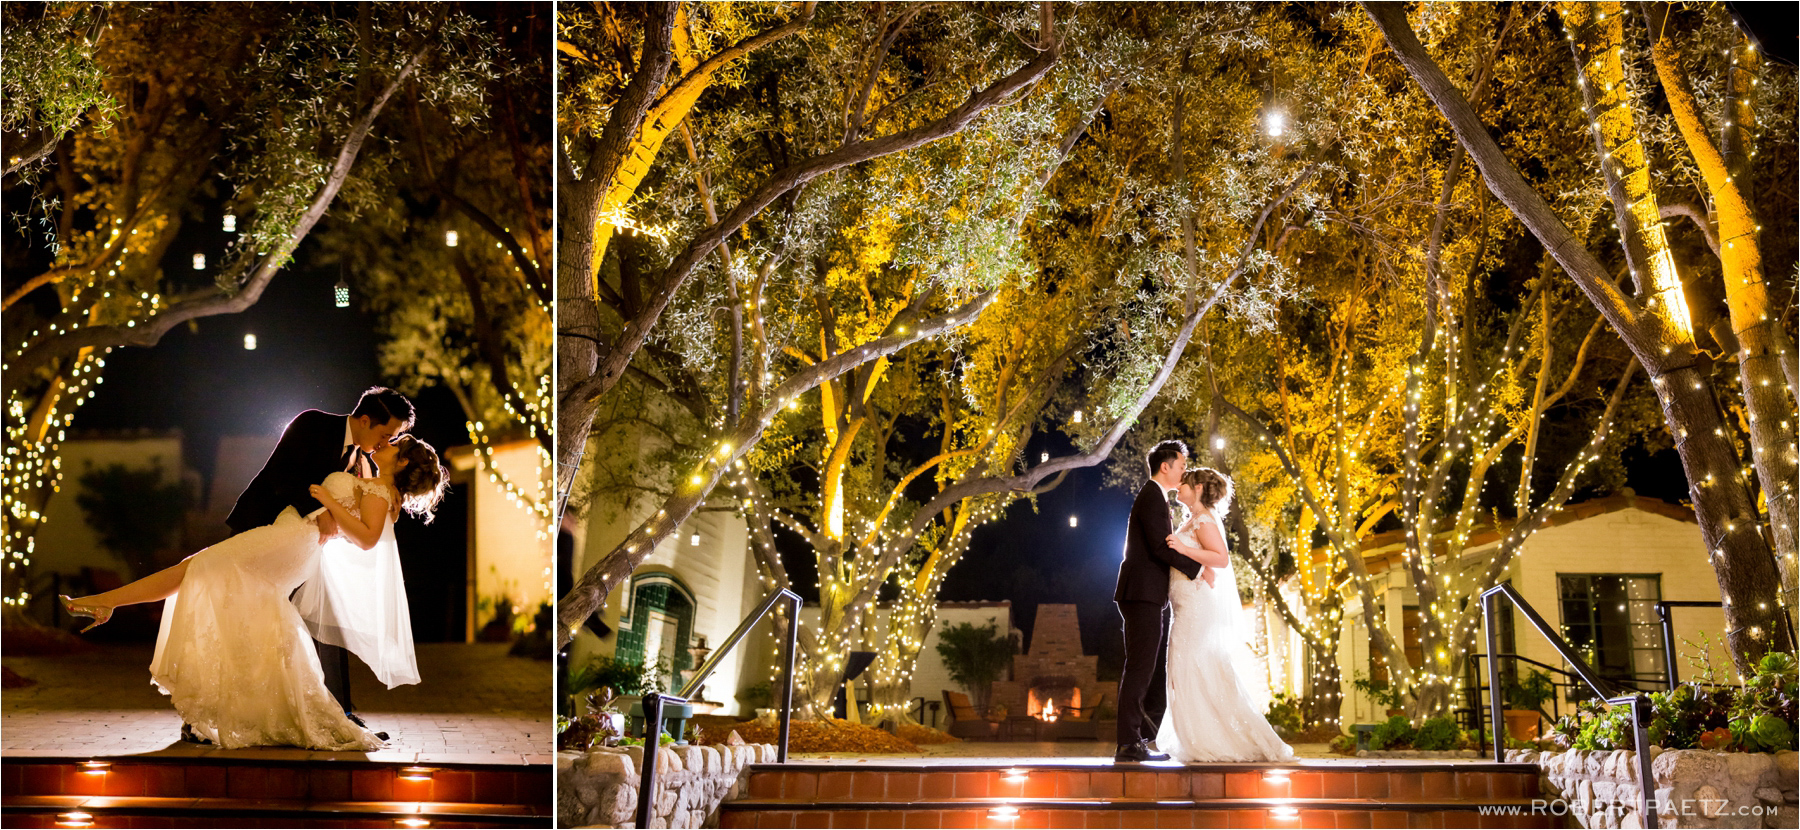 A wedding at the historic Padua Hills Theater in Claremont California photographed by the Los Angeles wedding photographer, Robert Paetz.